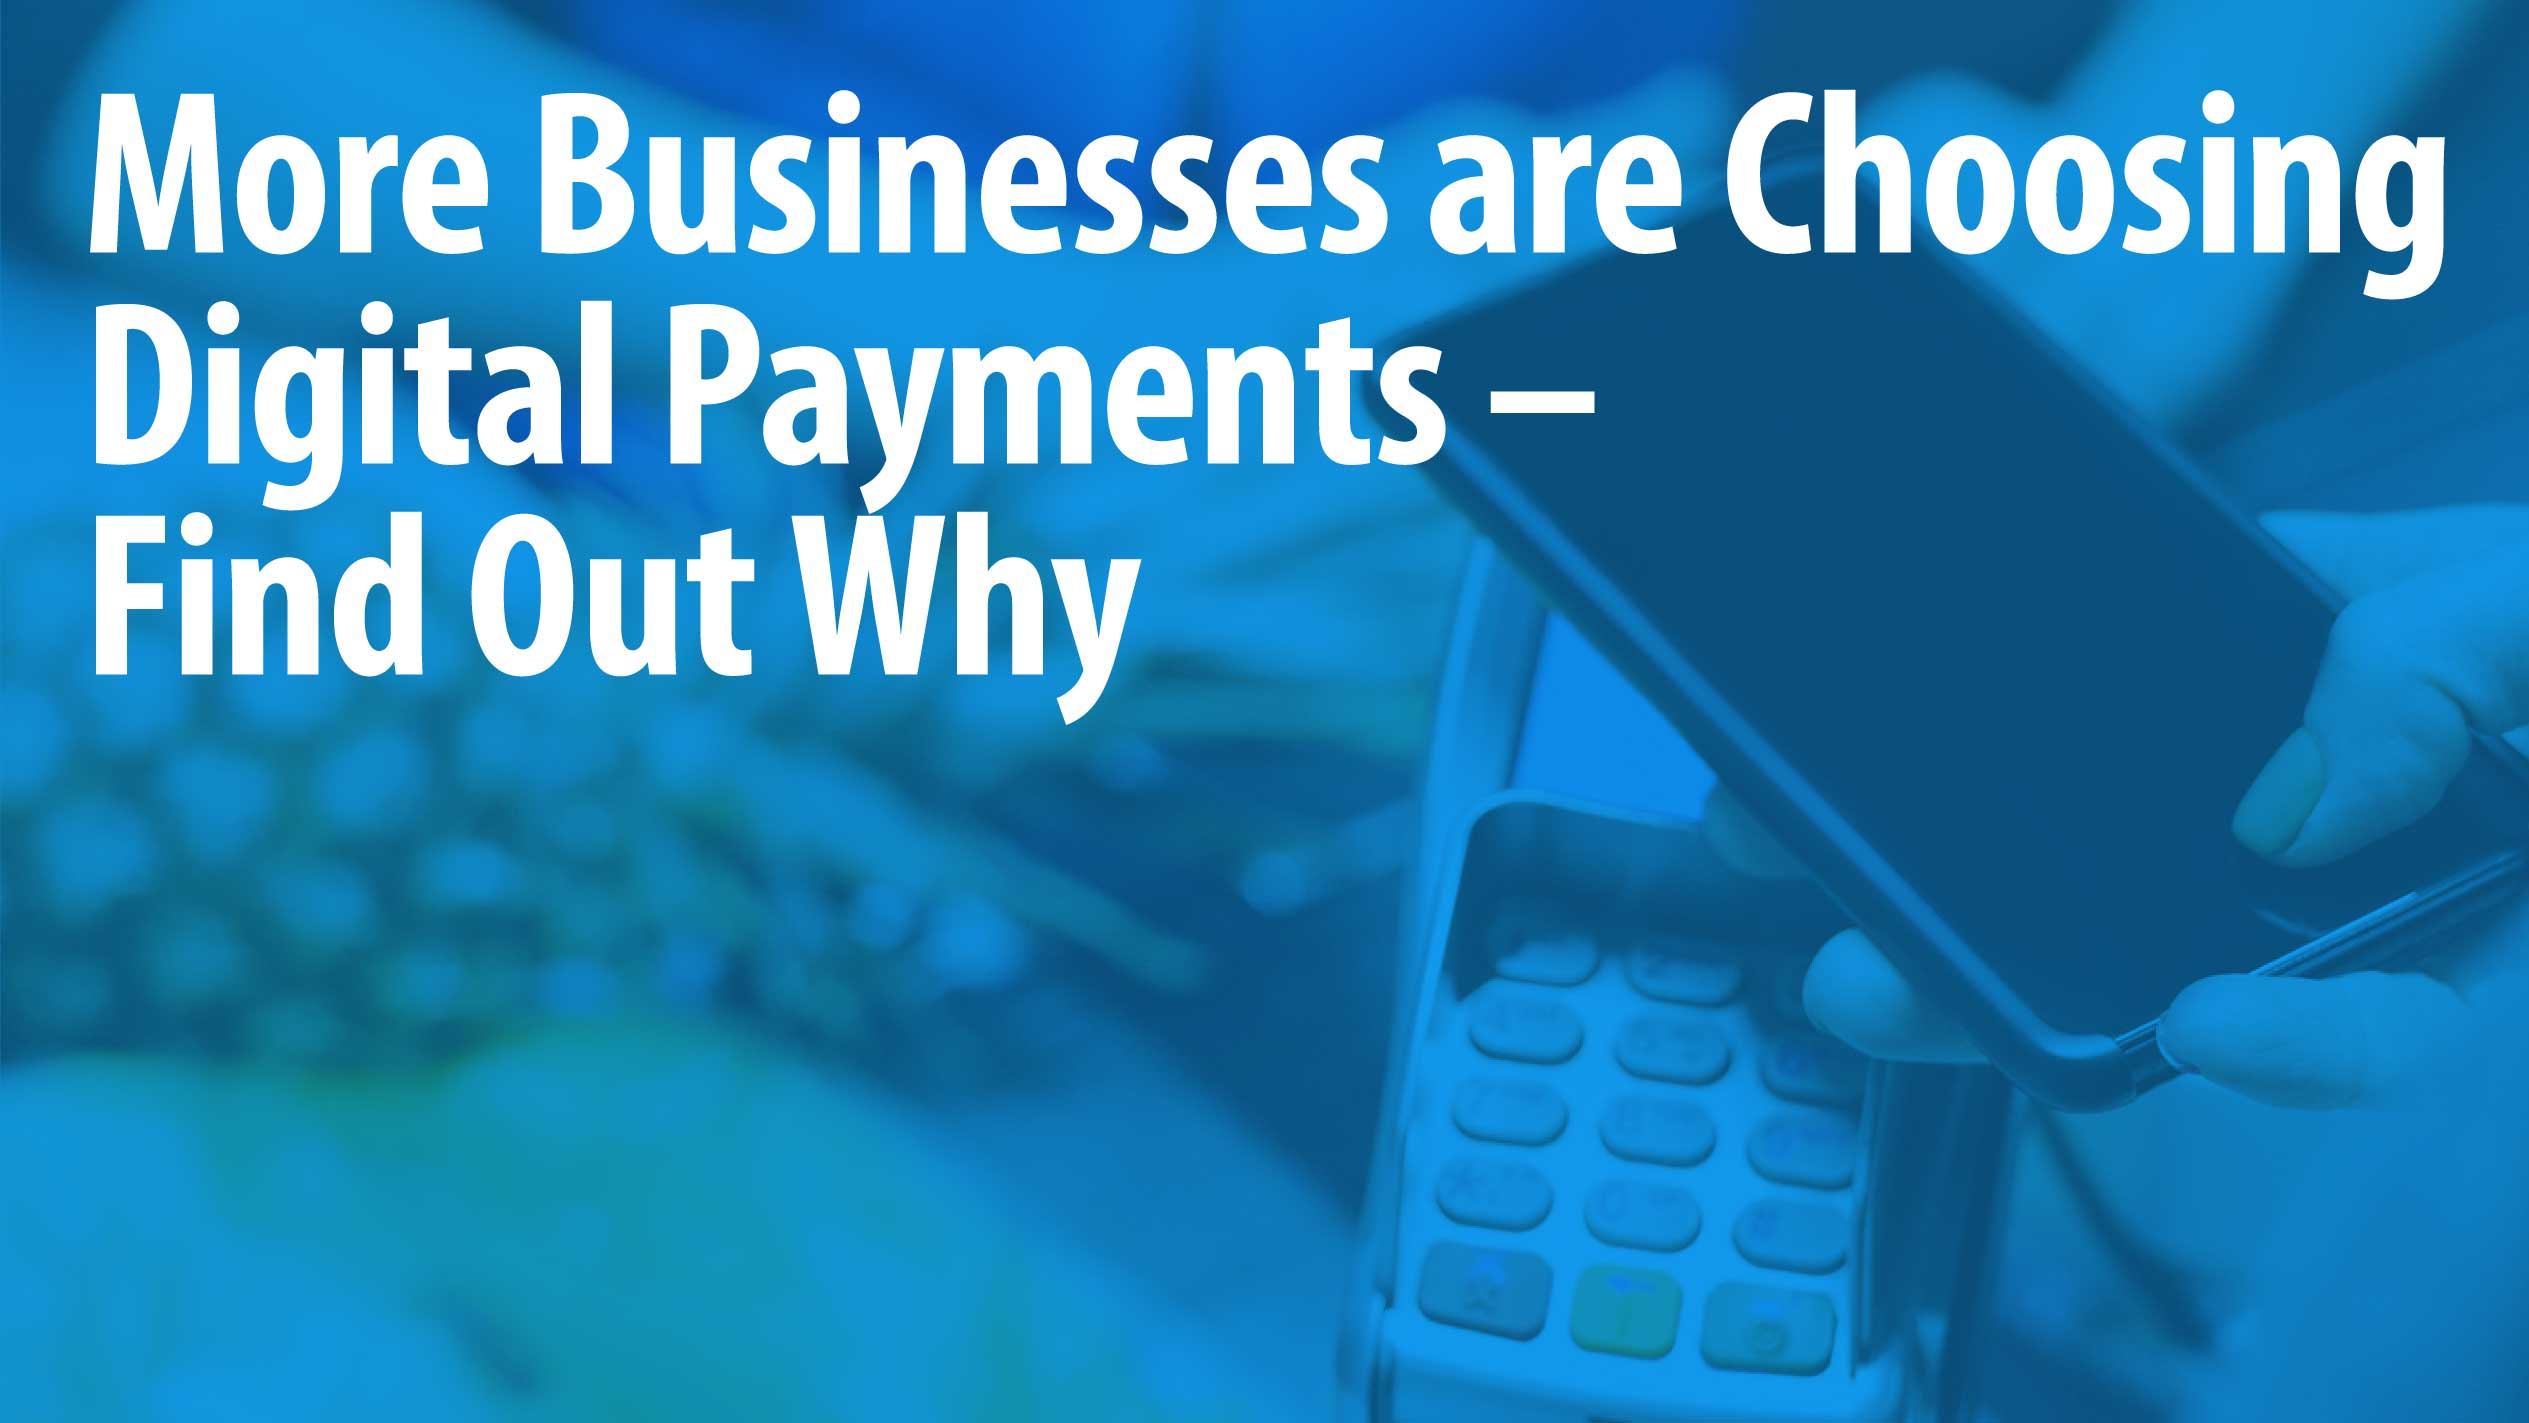 More Businesses are Choosing Digital Payments – Find Out Why